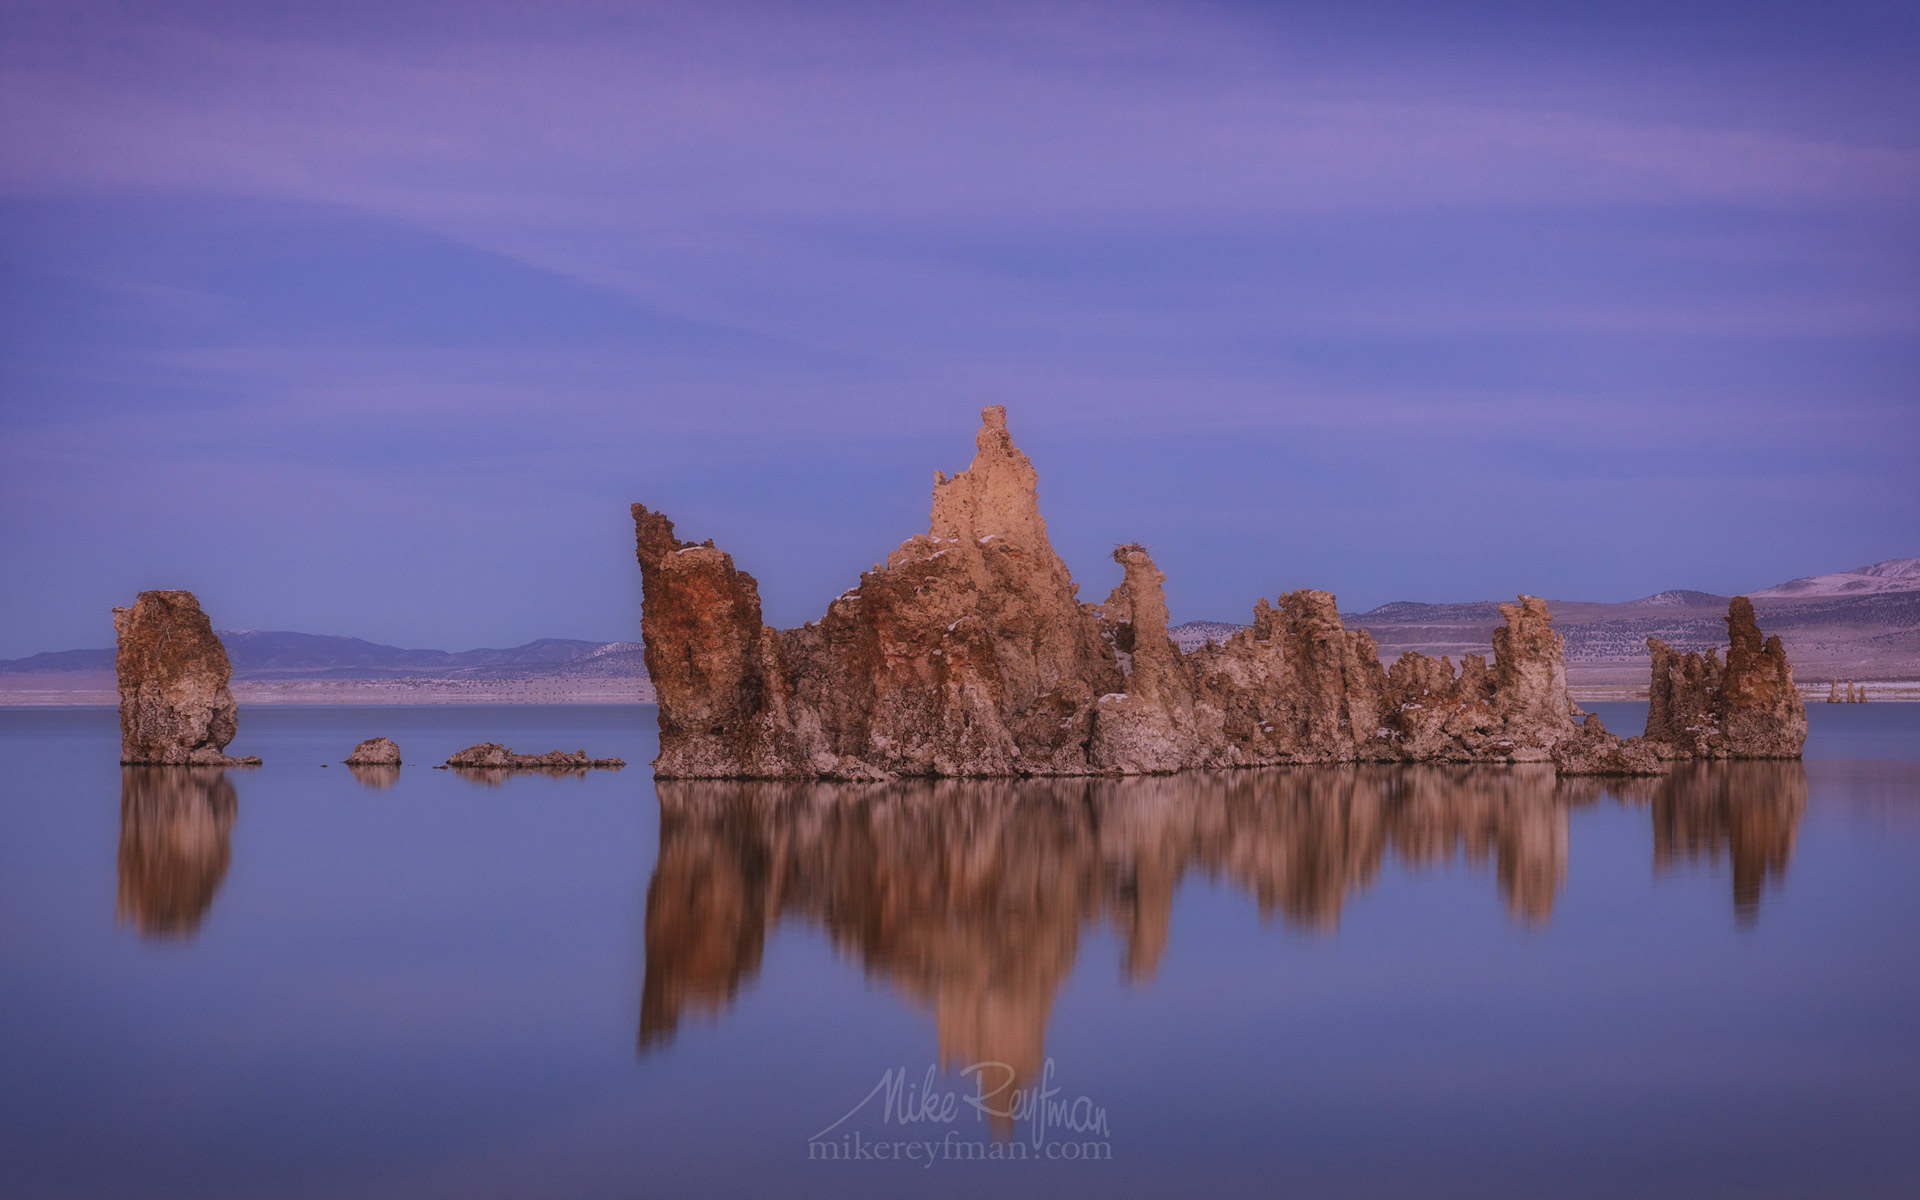 Mono Lake, Tufa State Natural Reserve, Eastern Sierra, California, USA ML1-MRN3X0686 - Mono Lake Tufa State Natural Reserve, Eastern Sierra, California - Mike Reyfman Photography